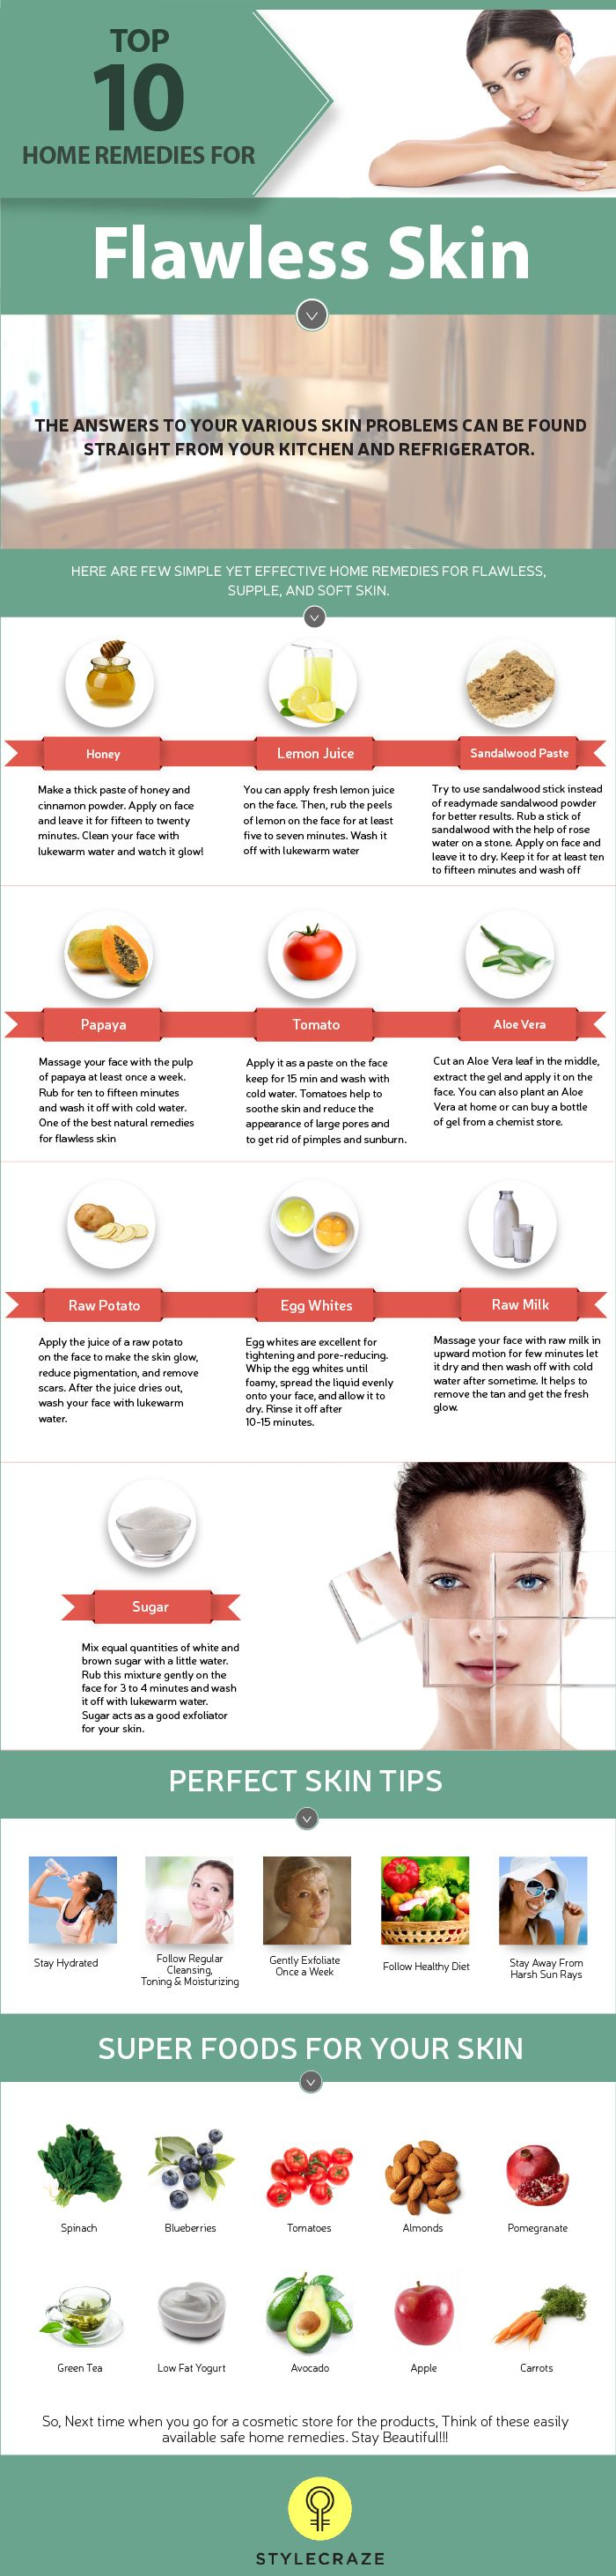 best images about Face on Pinterest  Trees Aloe vera and Argan oil